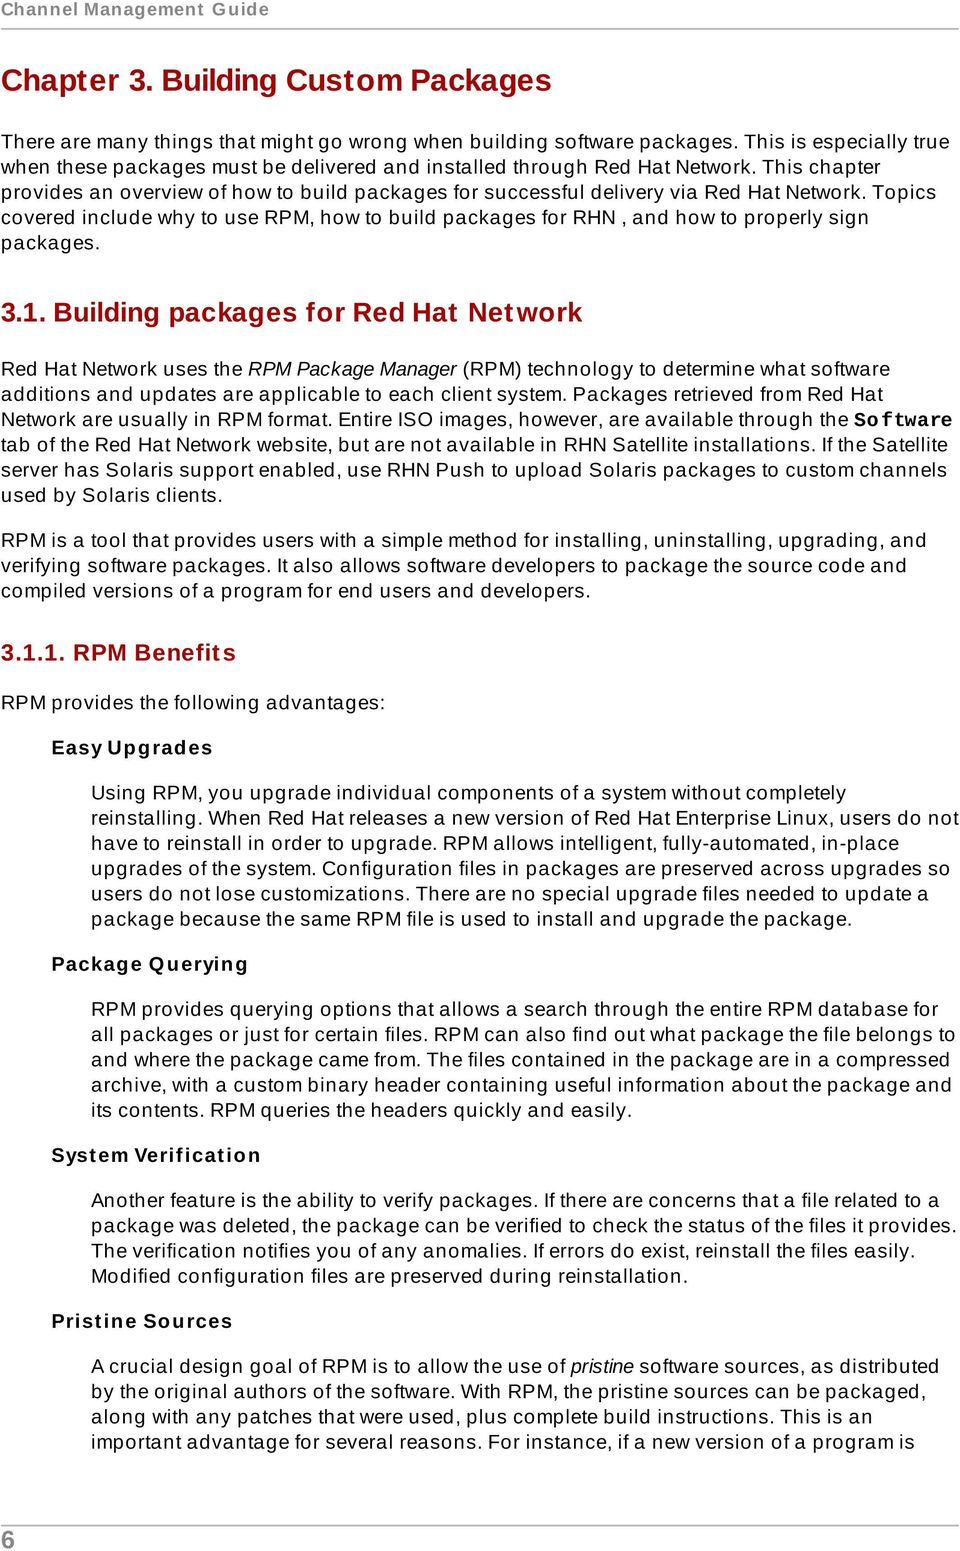 This chapter provides an overview of how to build packages for successful delivery via Red Hat Network.